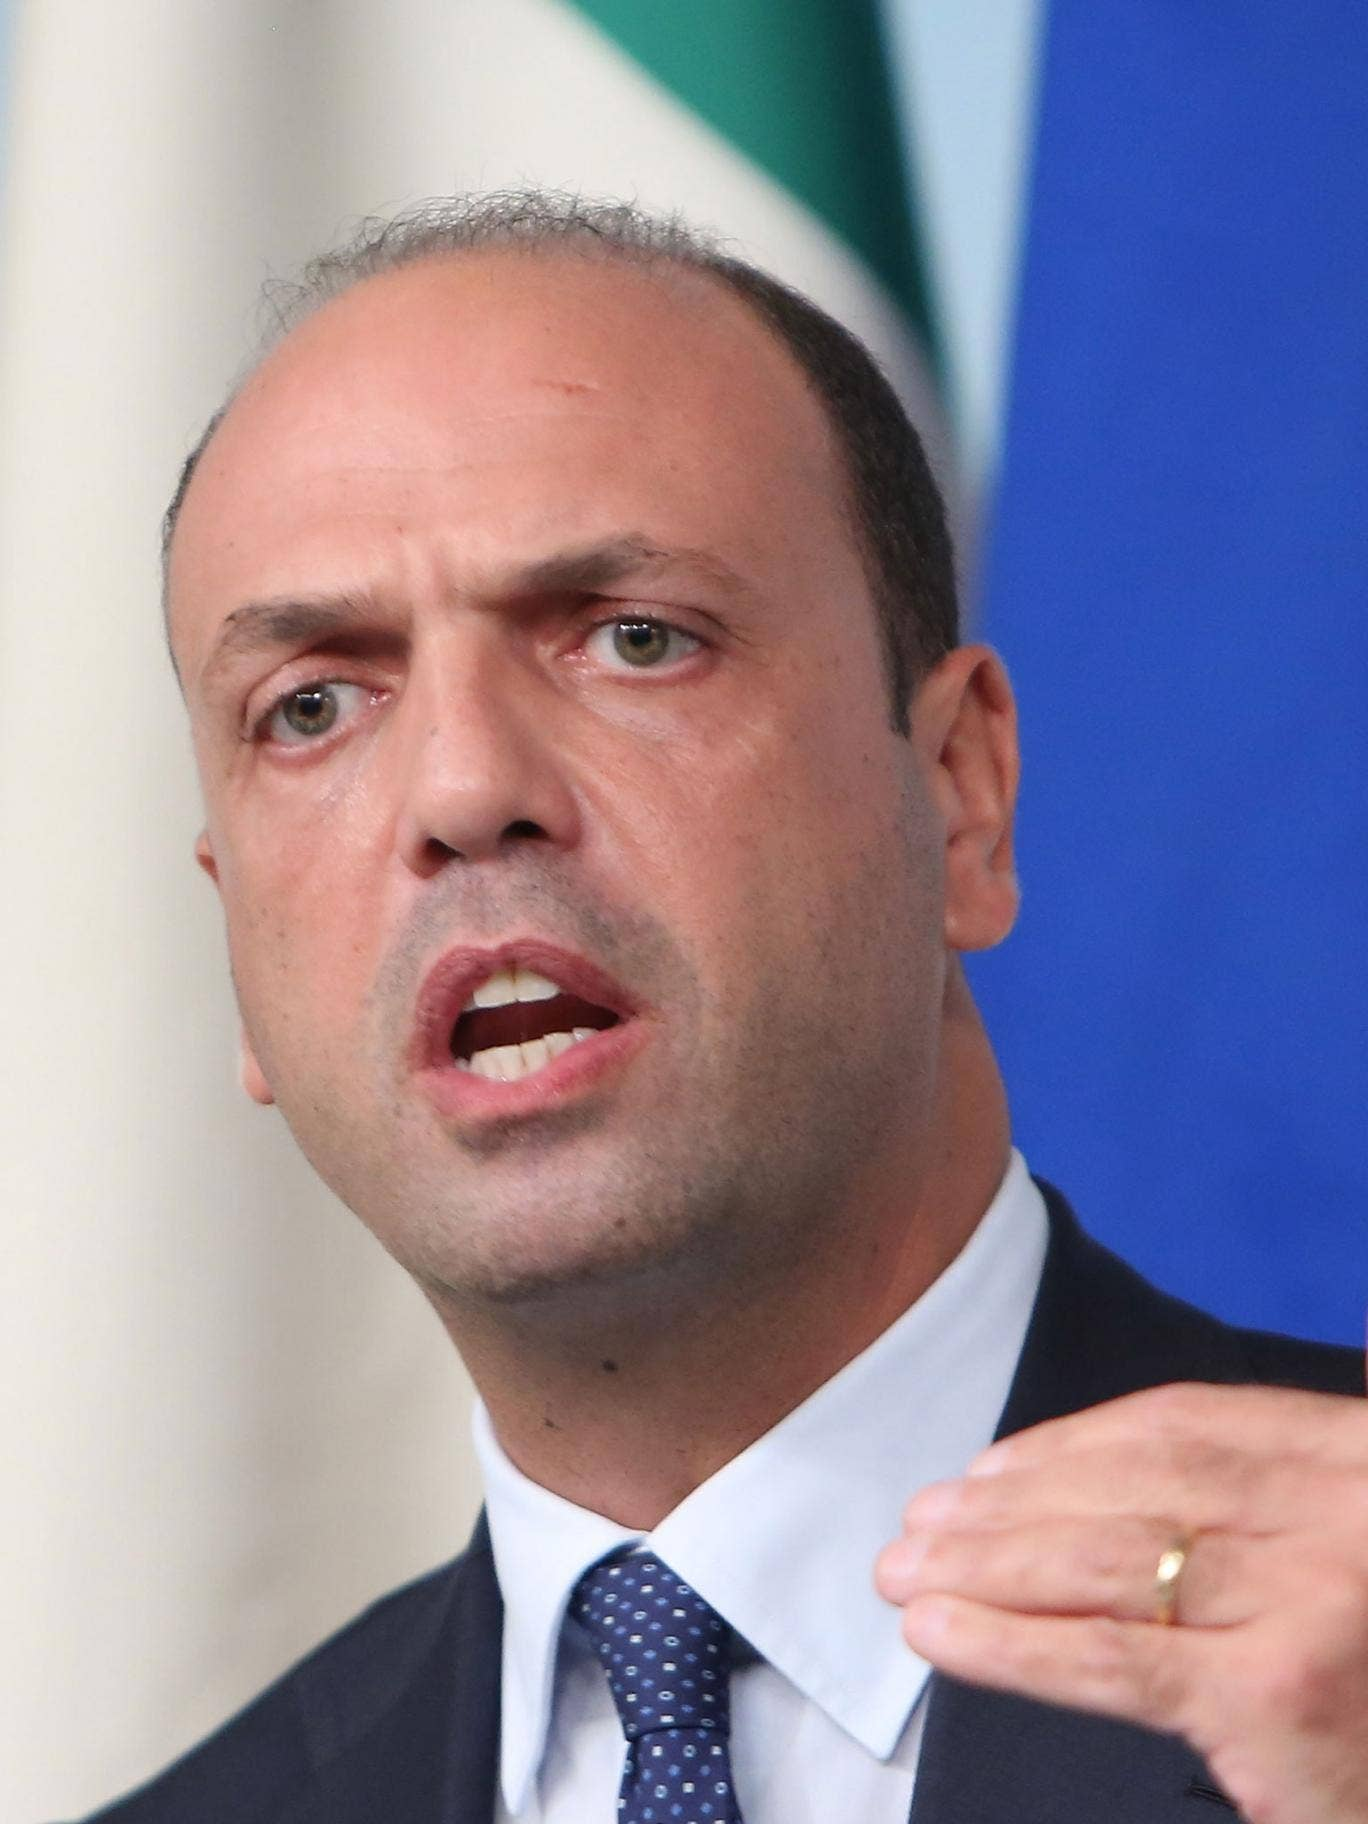 Deputy Prime Minister and Interior Minister Angelino Alfano of the PDL attends a press conference at Palazzo Chigi on October 9, 2013